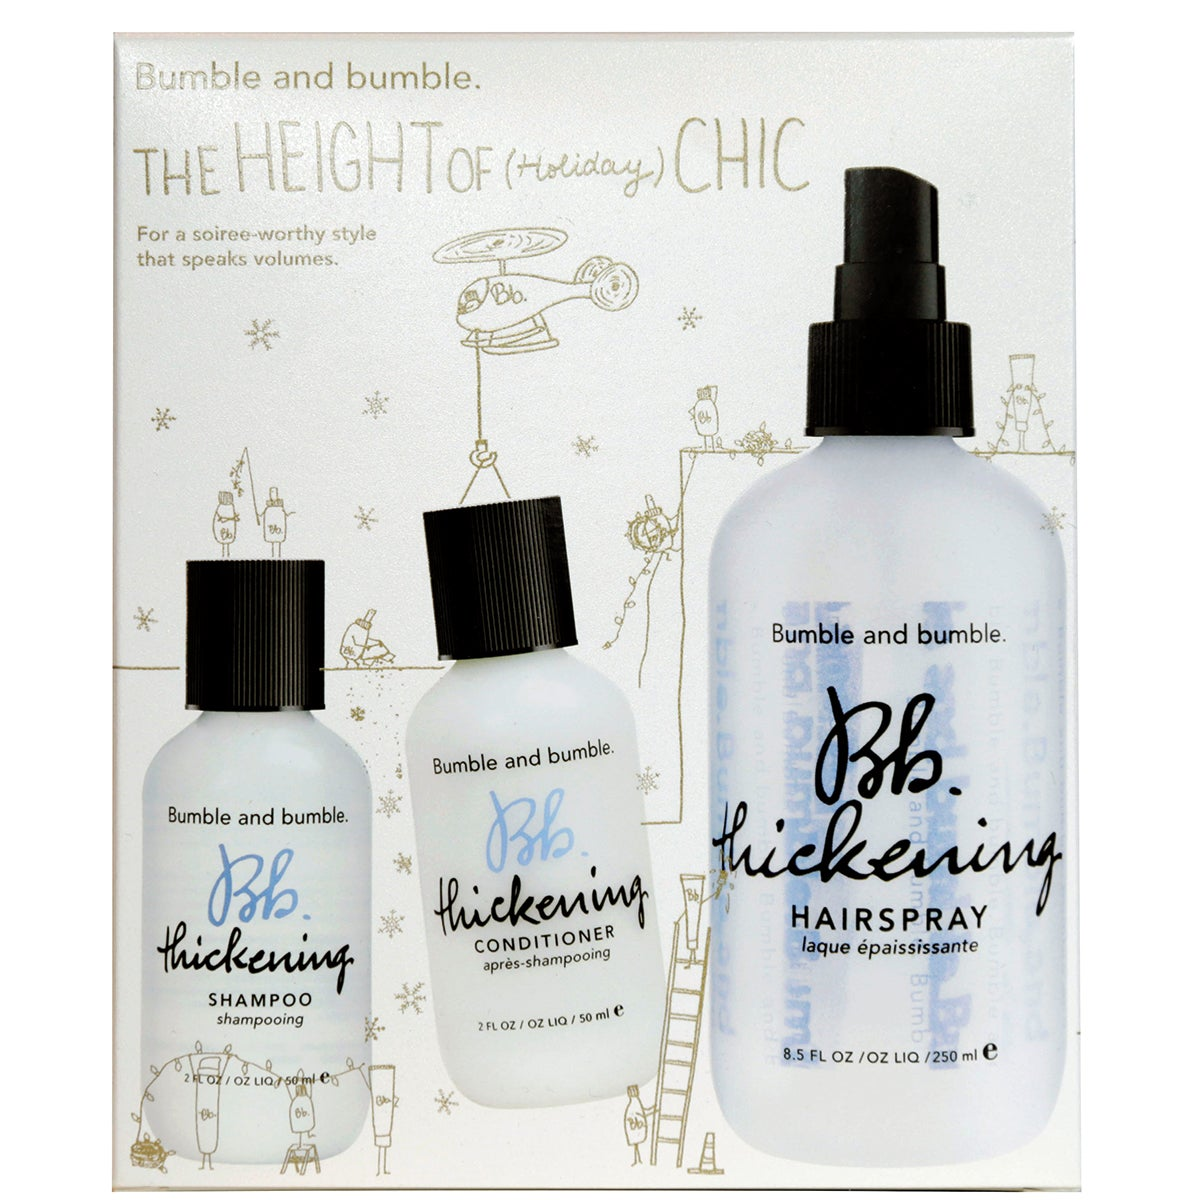 Bumble & Bumble Holiday 2016 Thickening Set